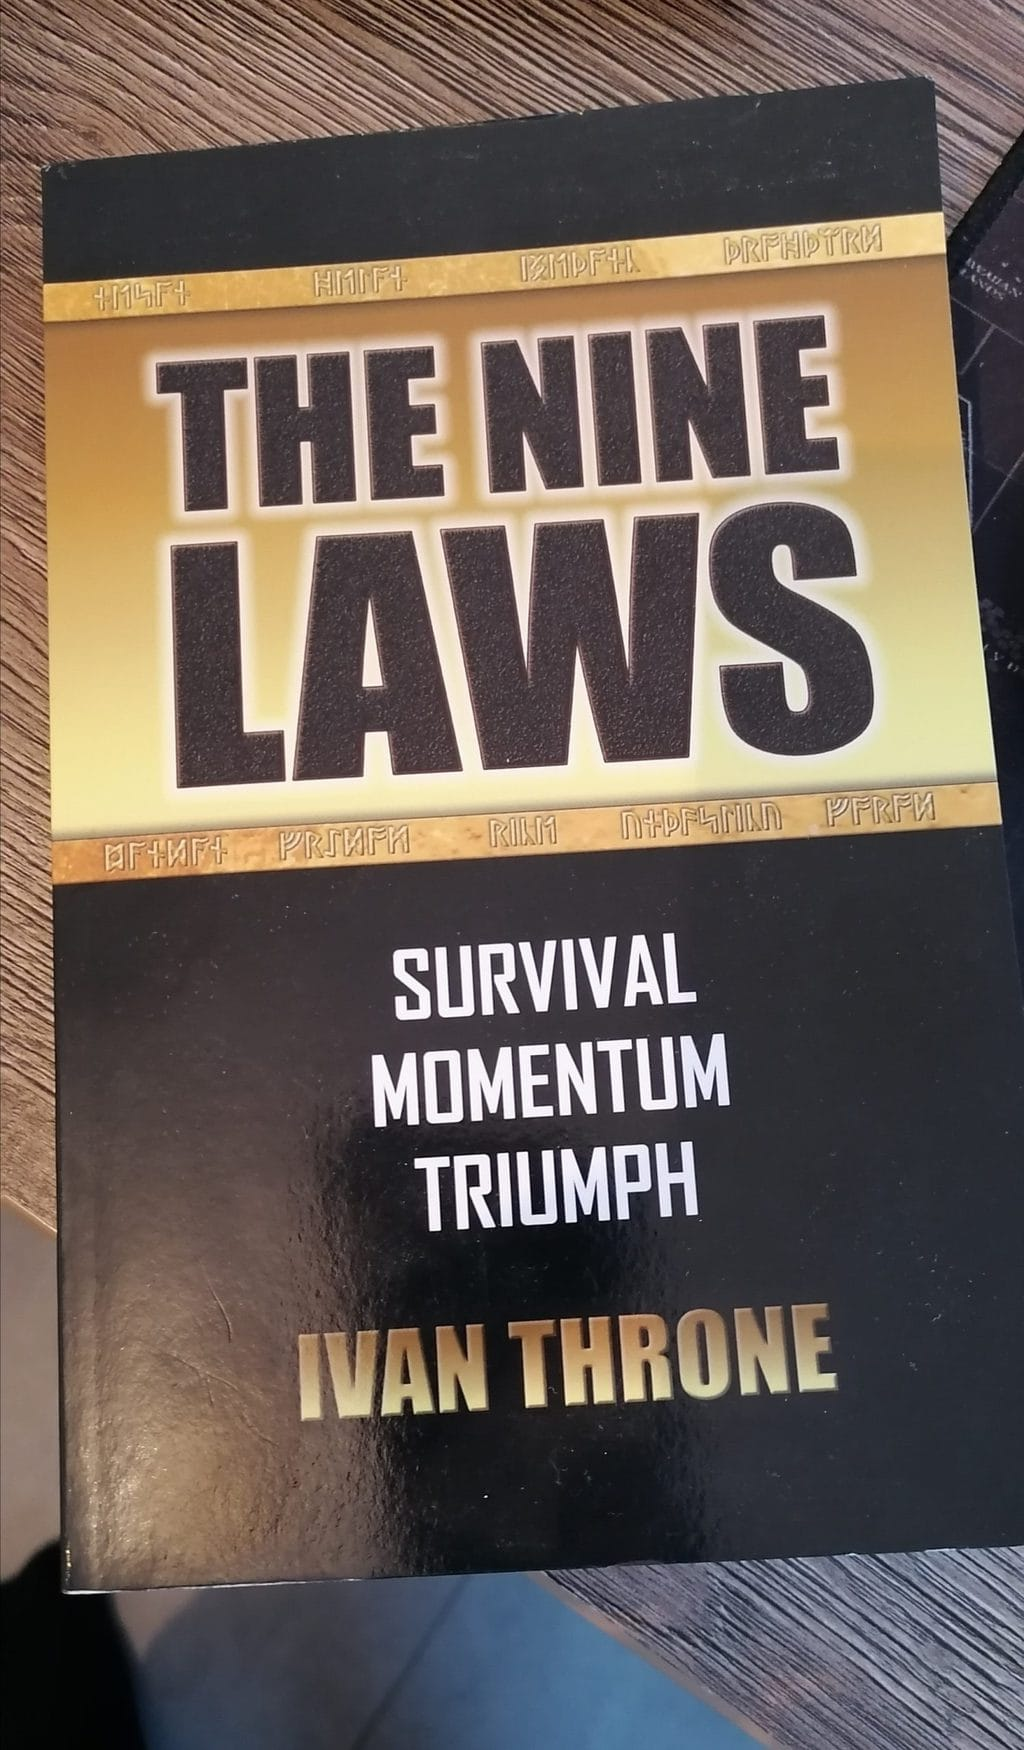 ivan throne's the nine laws book